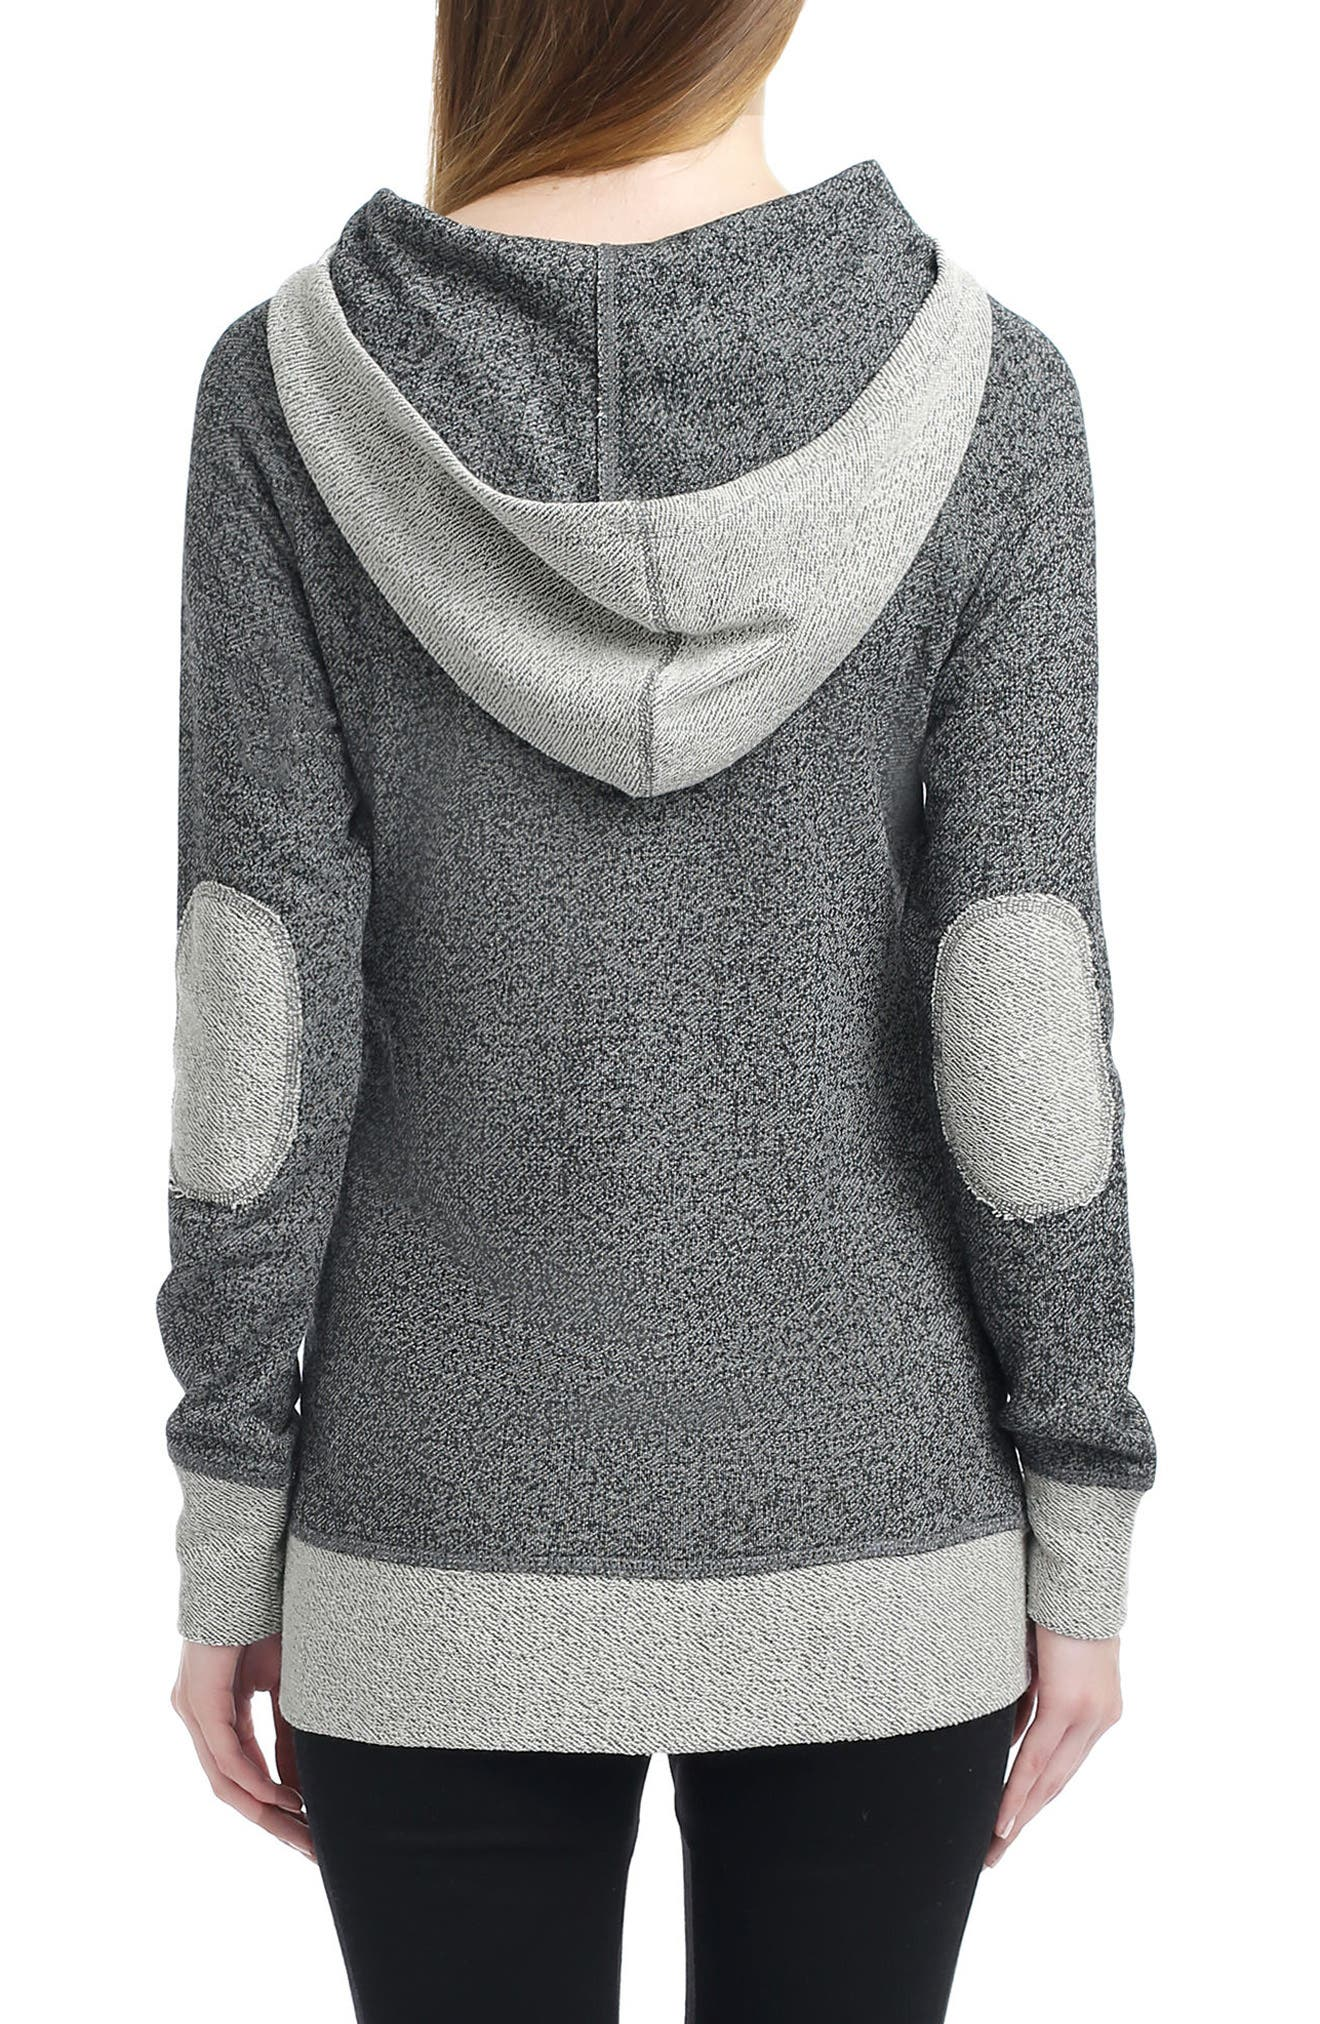 KIMI AND KAI, Pippy Cowl Neck Maternity Hoodie, Main thumbnail 1, color, GREY